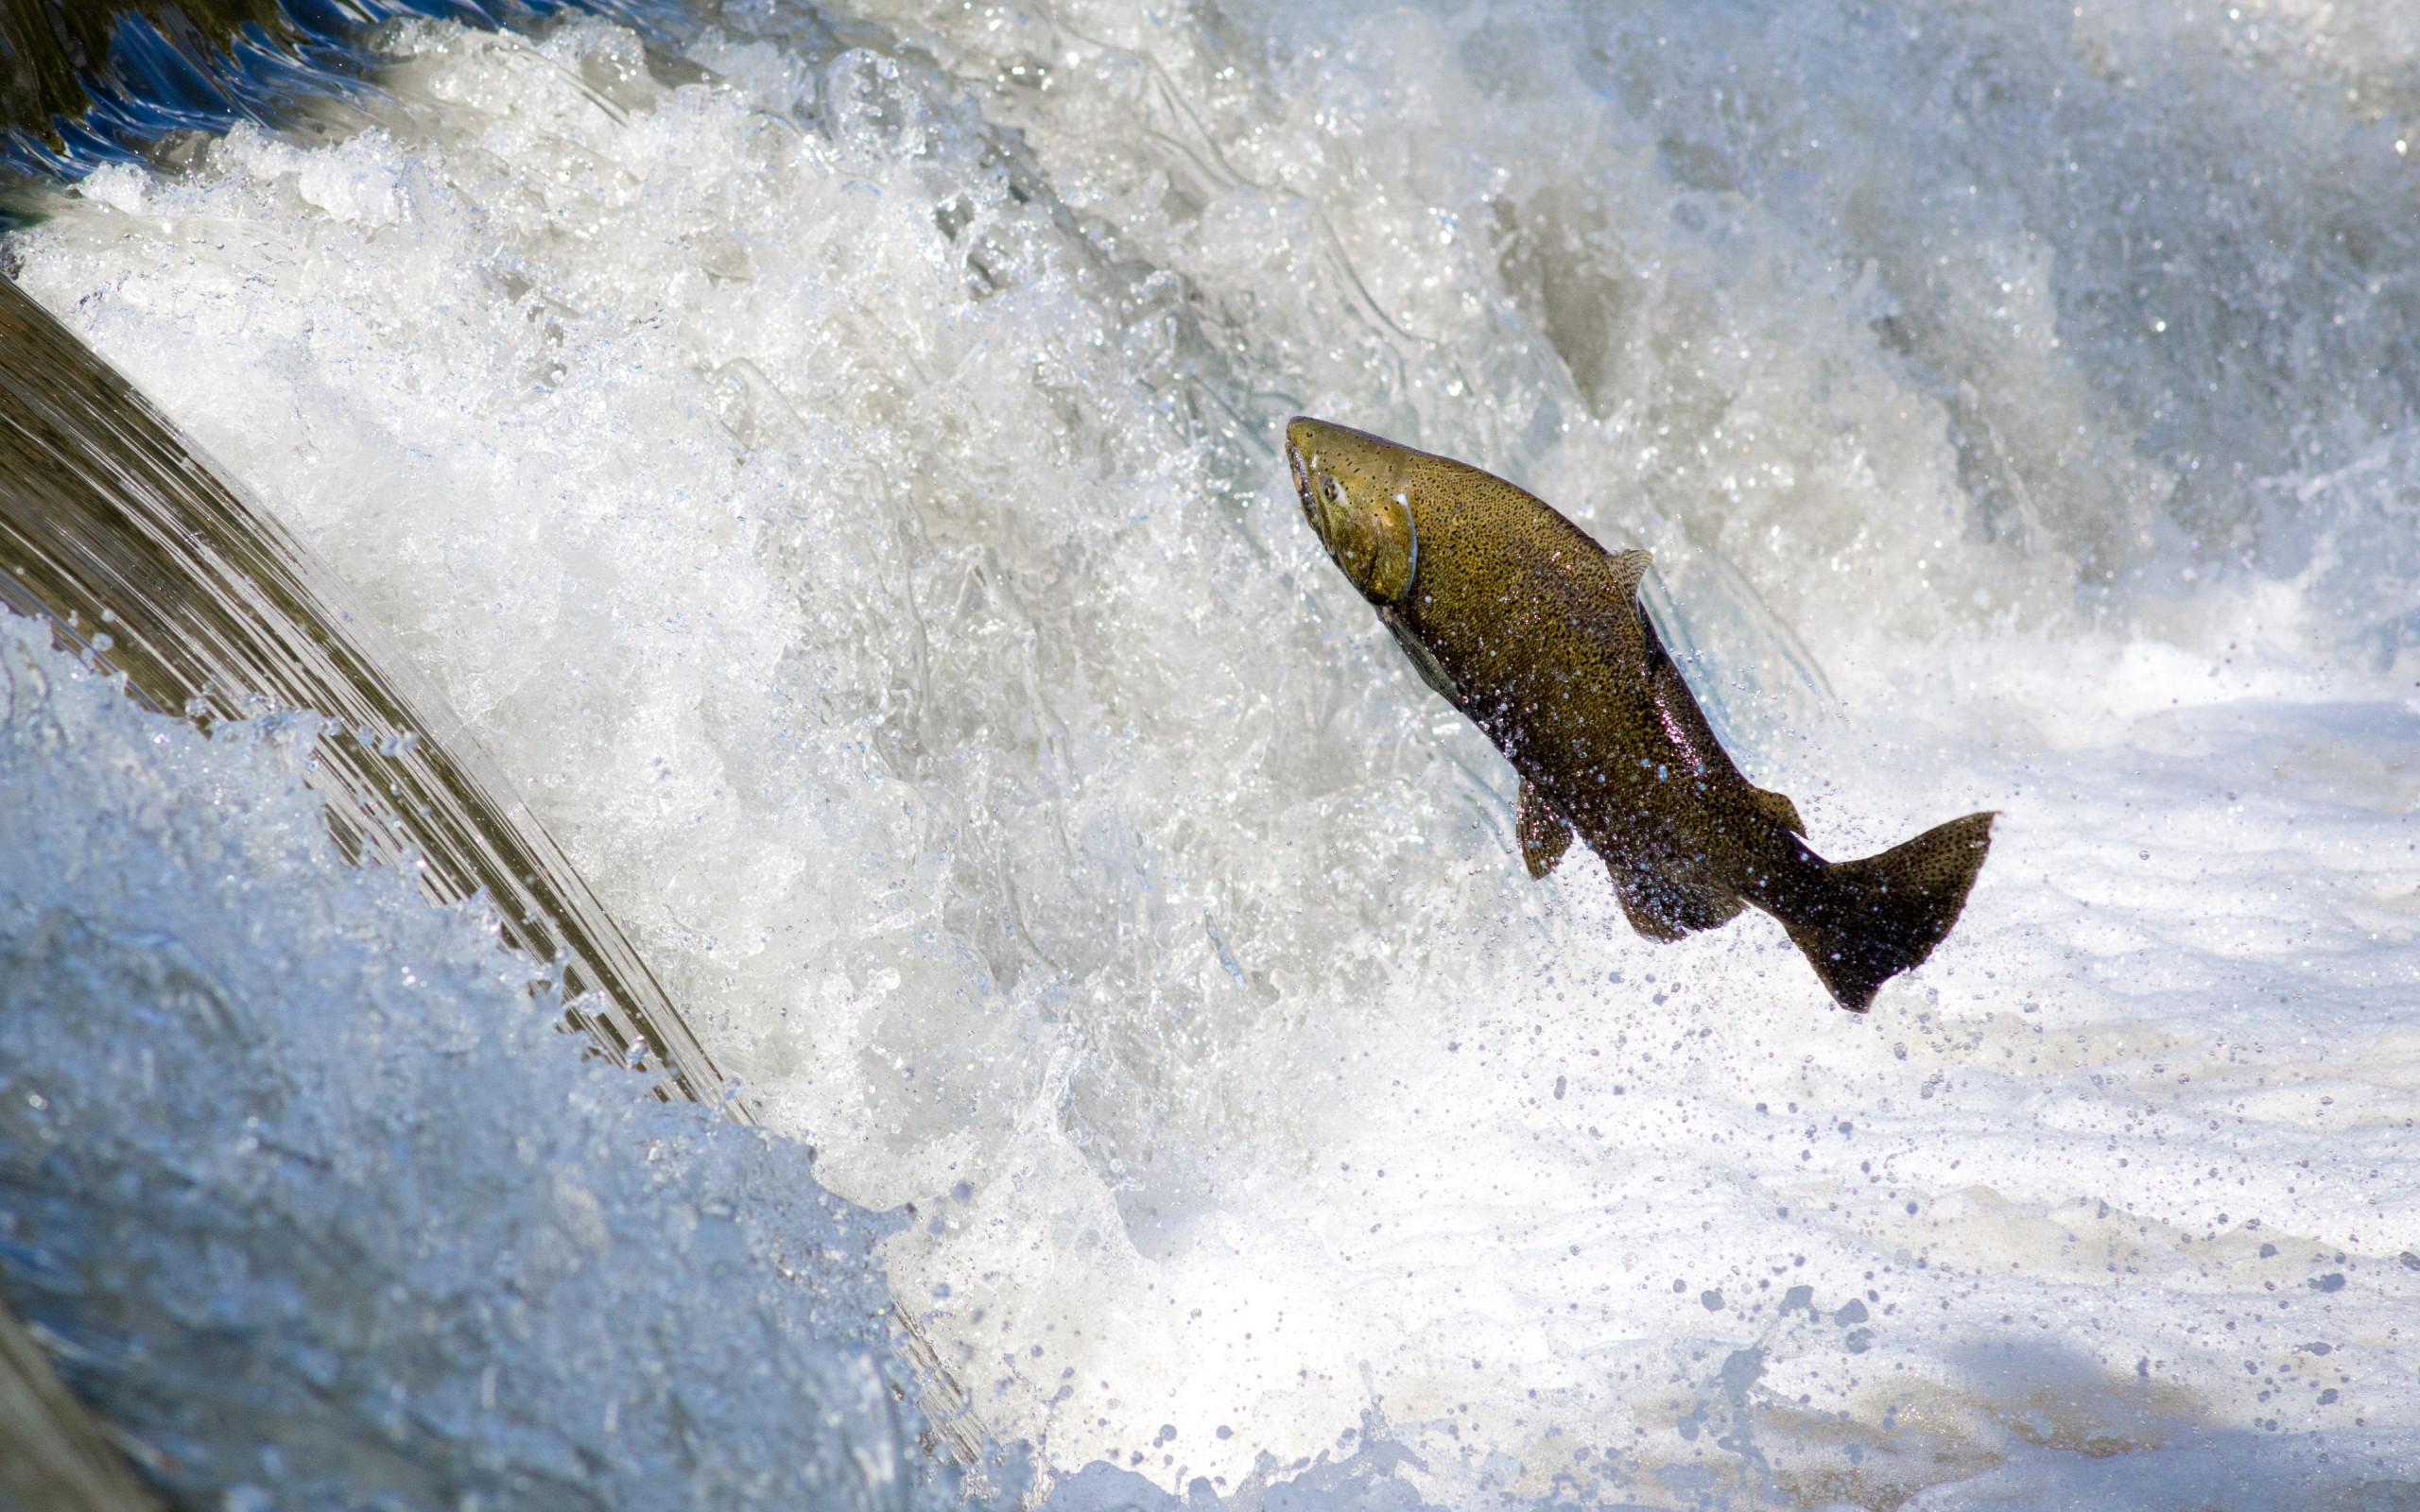 Salmon jumping over waterfall | 2560x1600 wallpaper